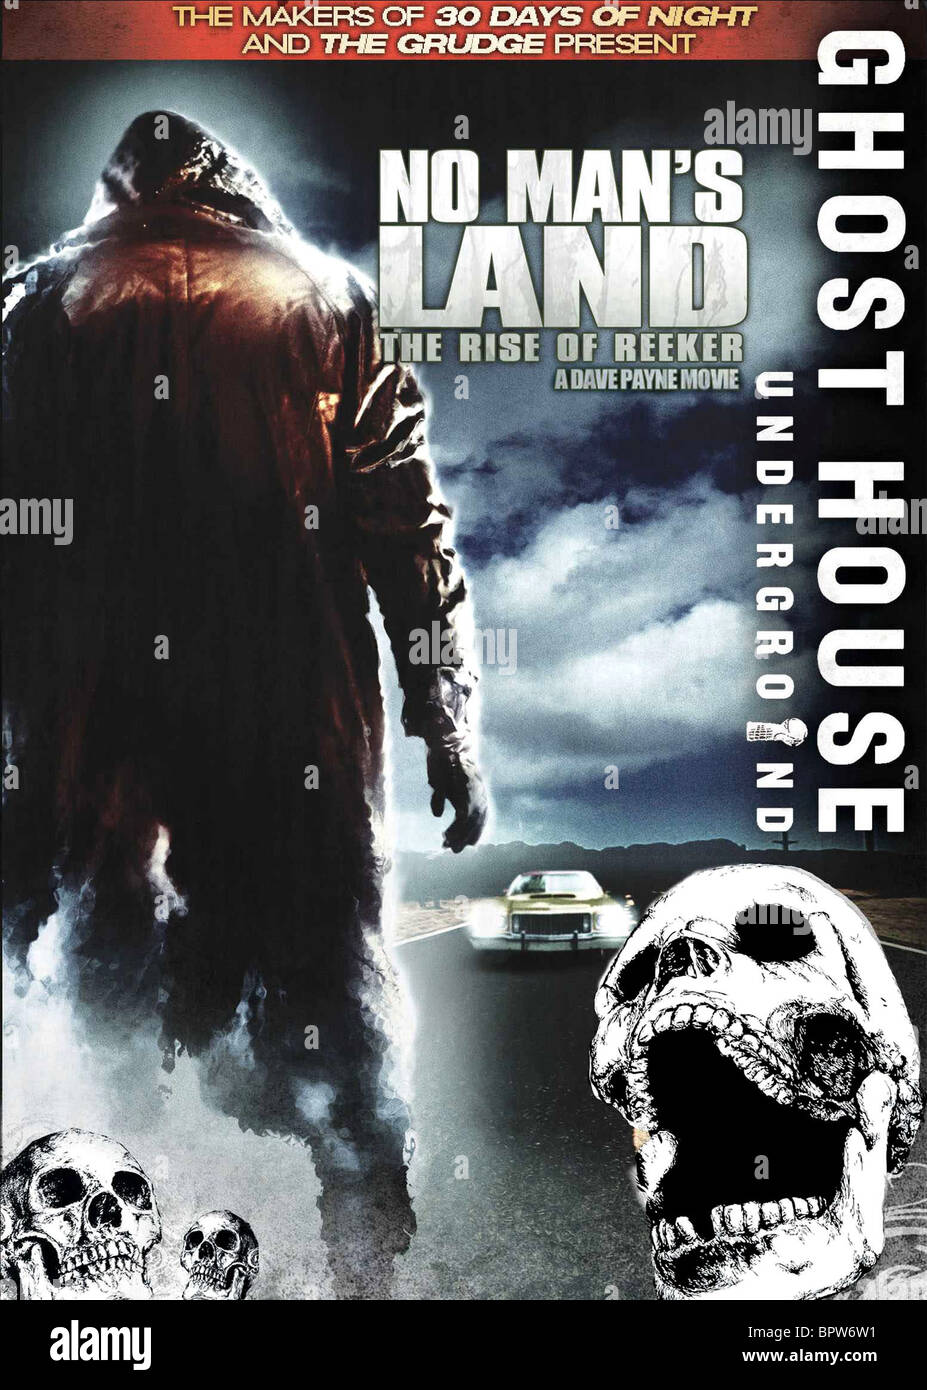 MOVIE POSTER NO MAN'S LAND: THE RISE OF REEKER (2008) - Stock Image